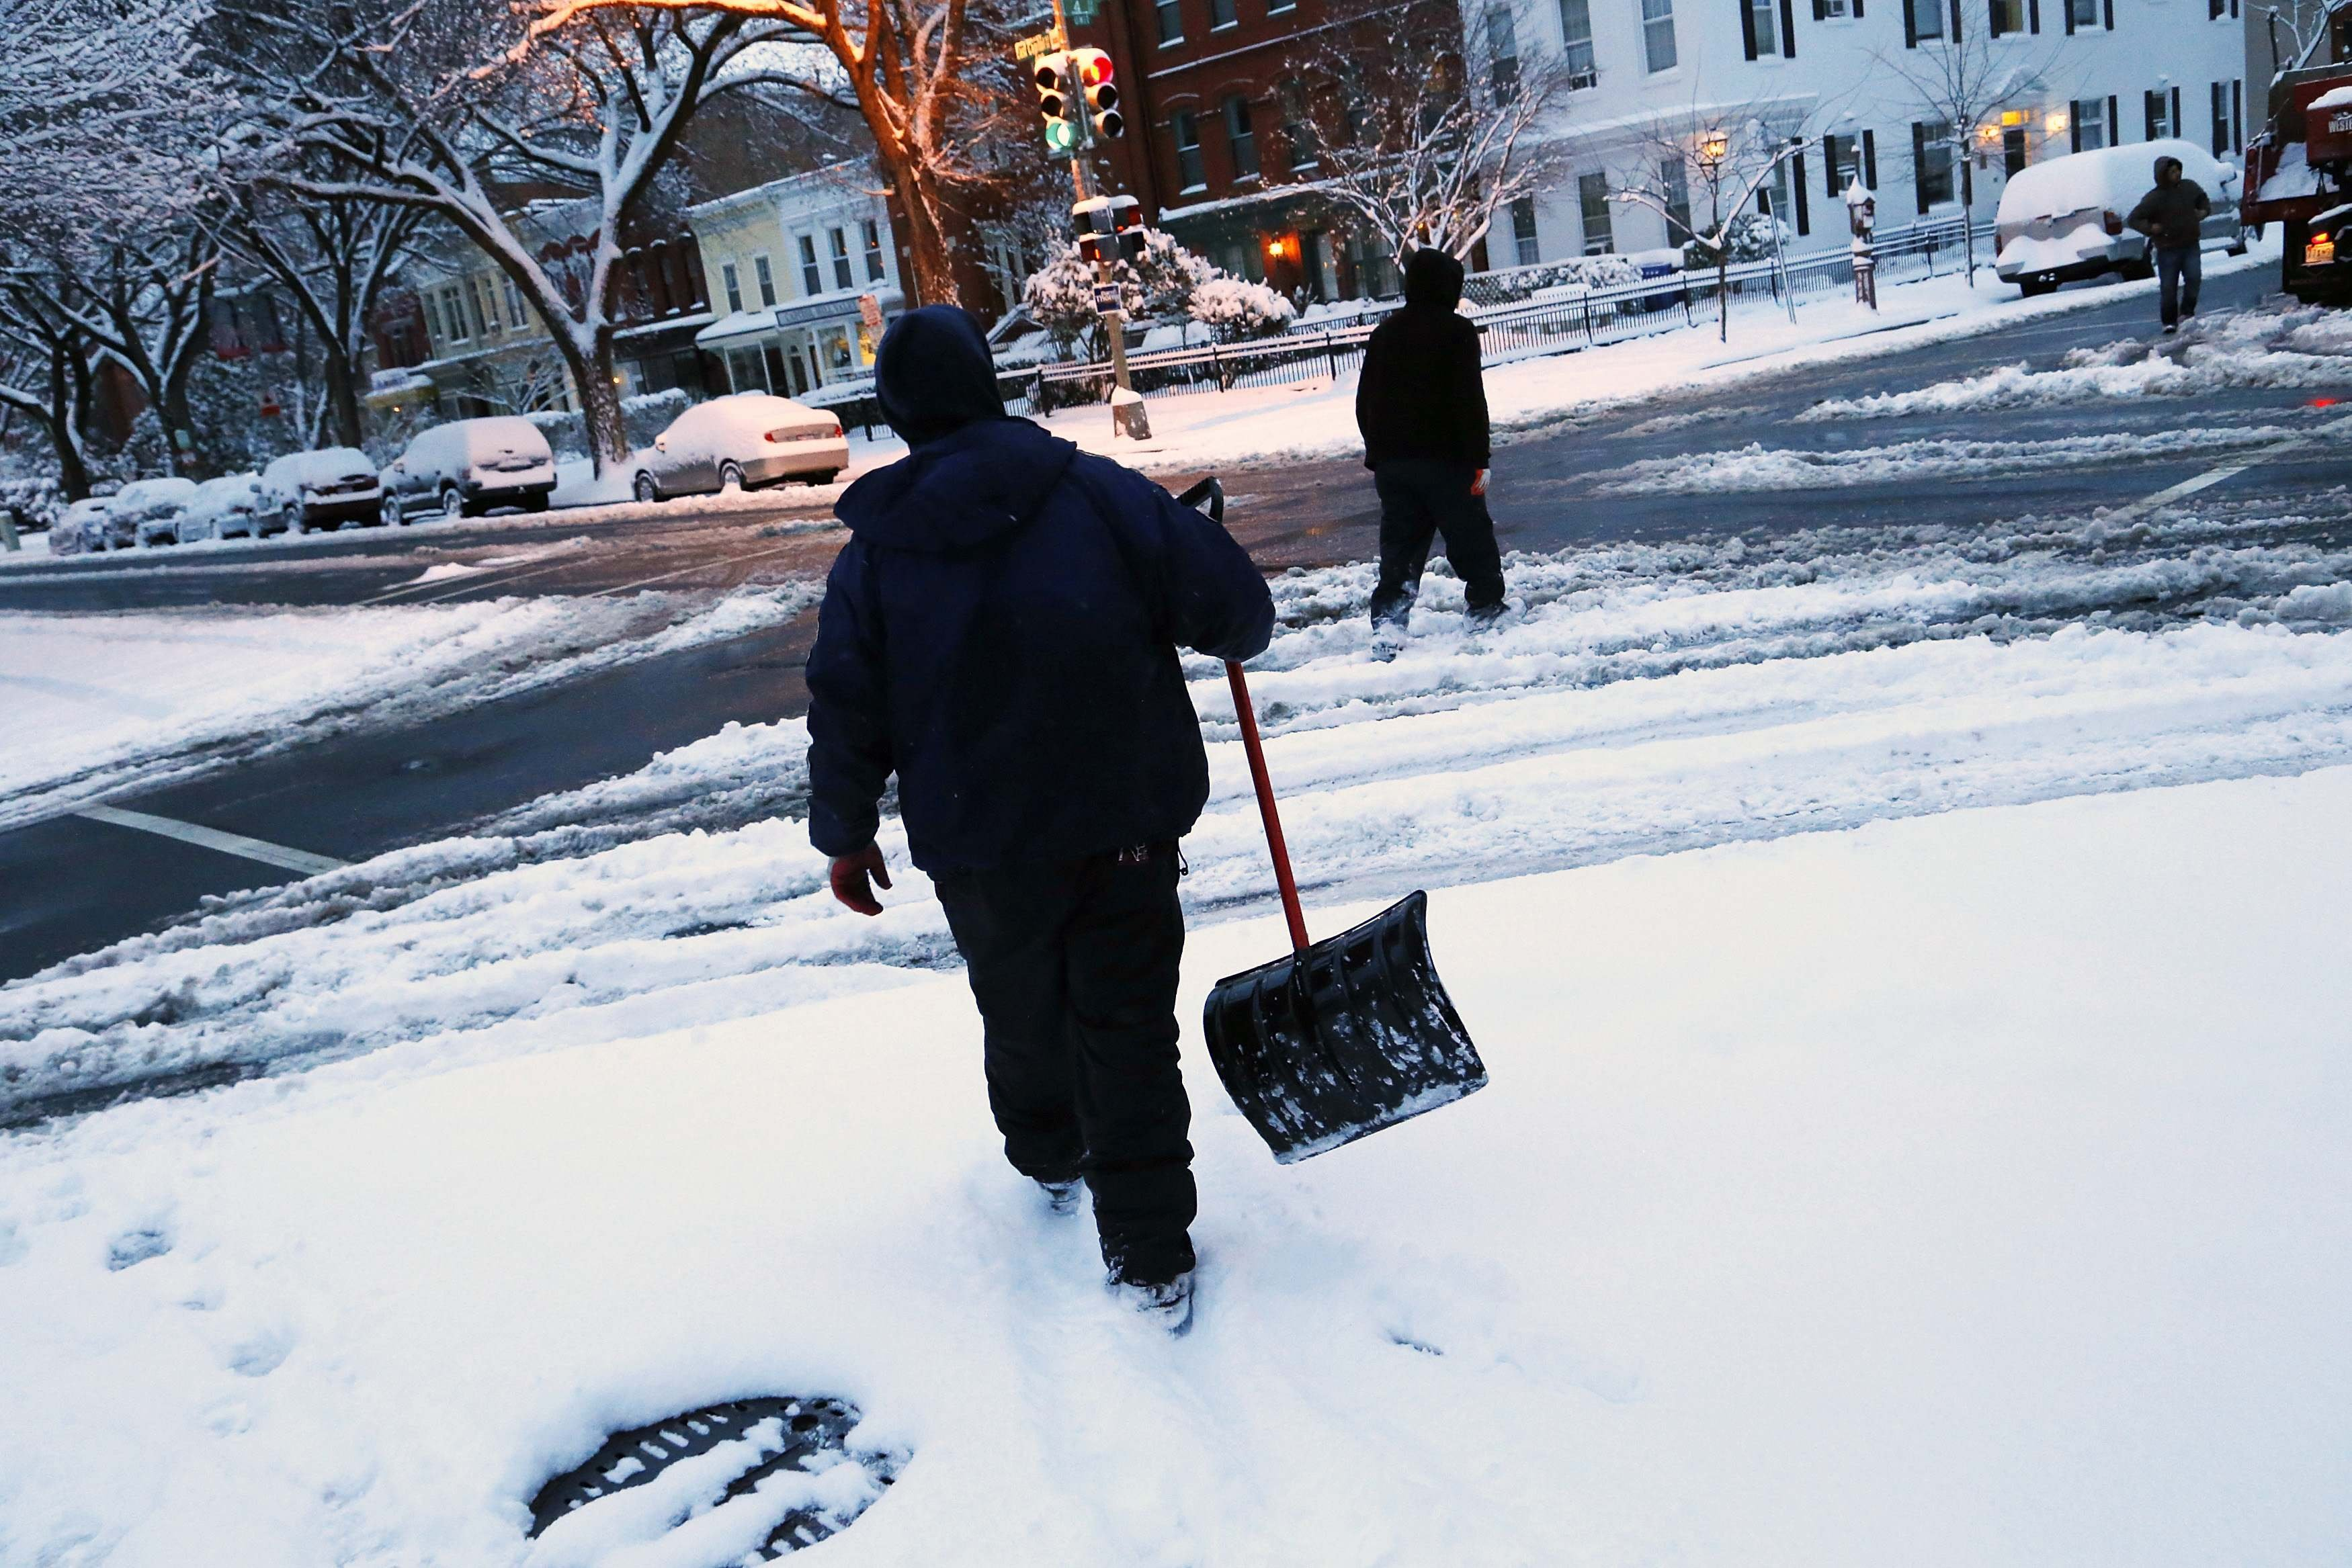 Snow shovelers in the Capitol Hill neighborhood in Washington, D.C., on March 17, 2014.